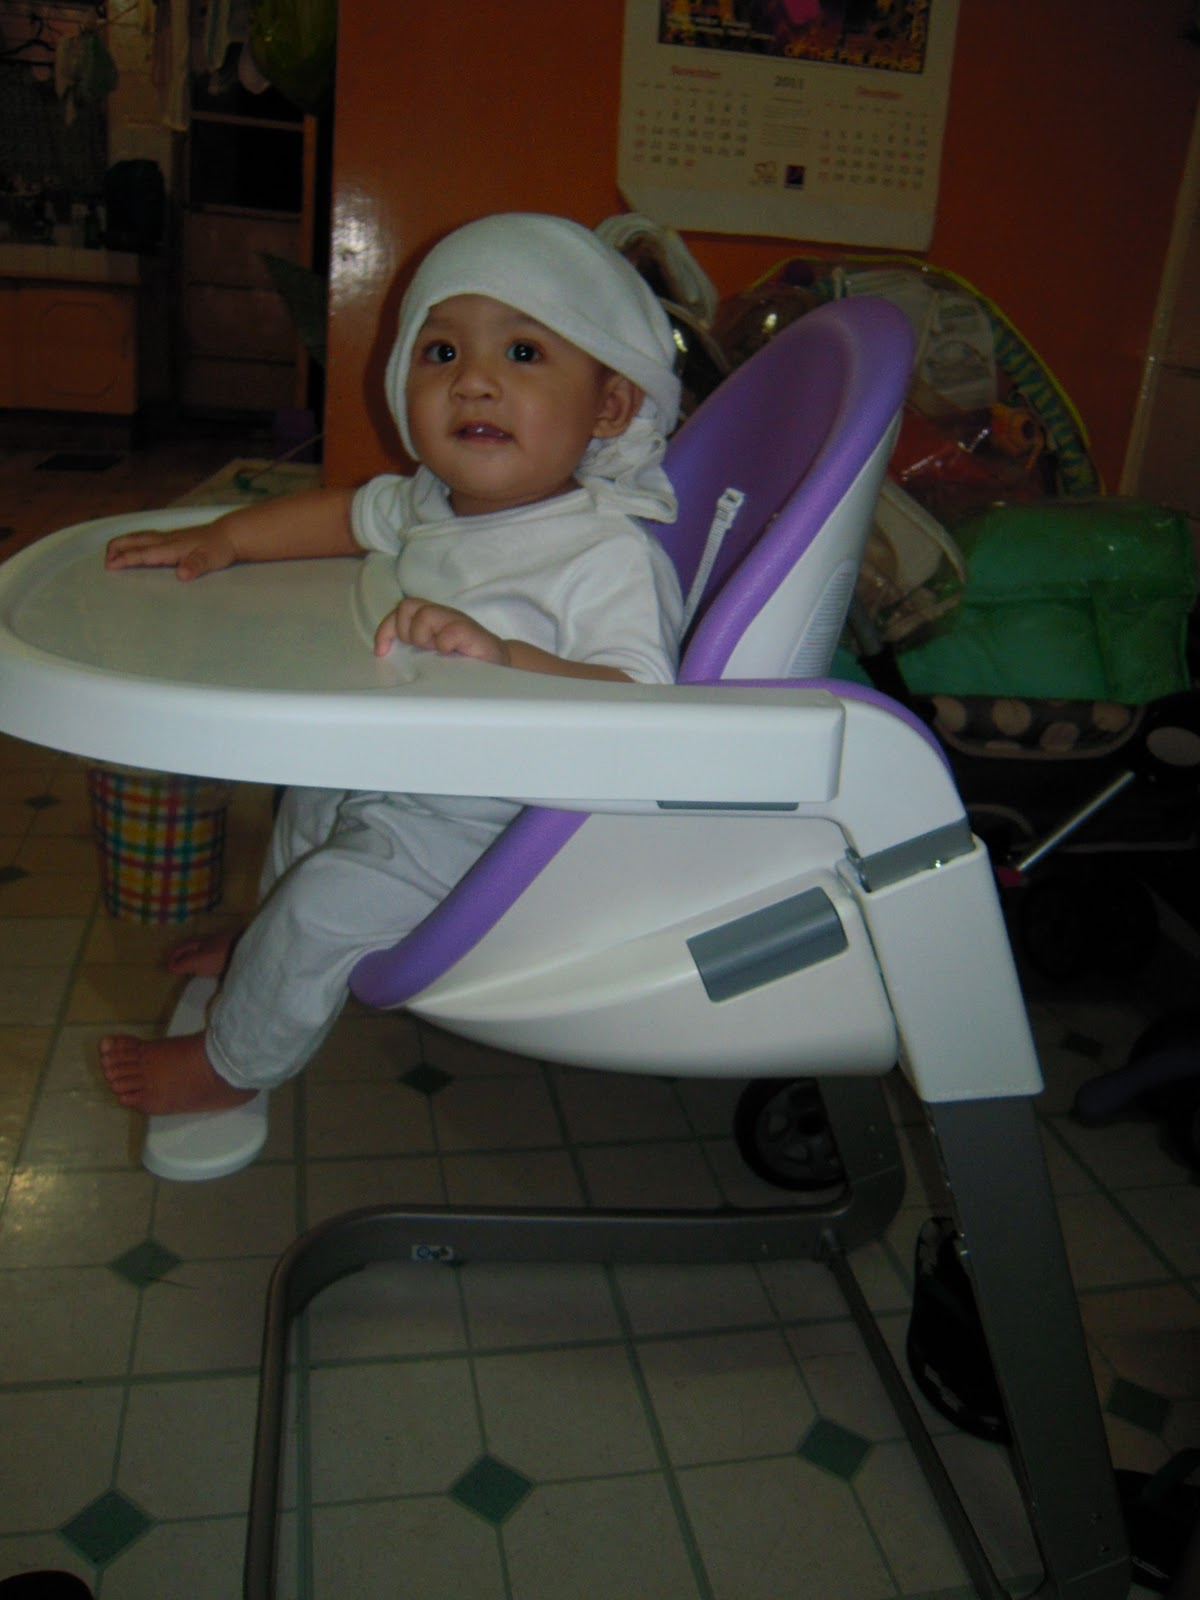 Adult Baby High Chair How To Make Spandex Covers First Time Mom Ava And The Chicco I Sit